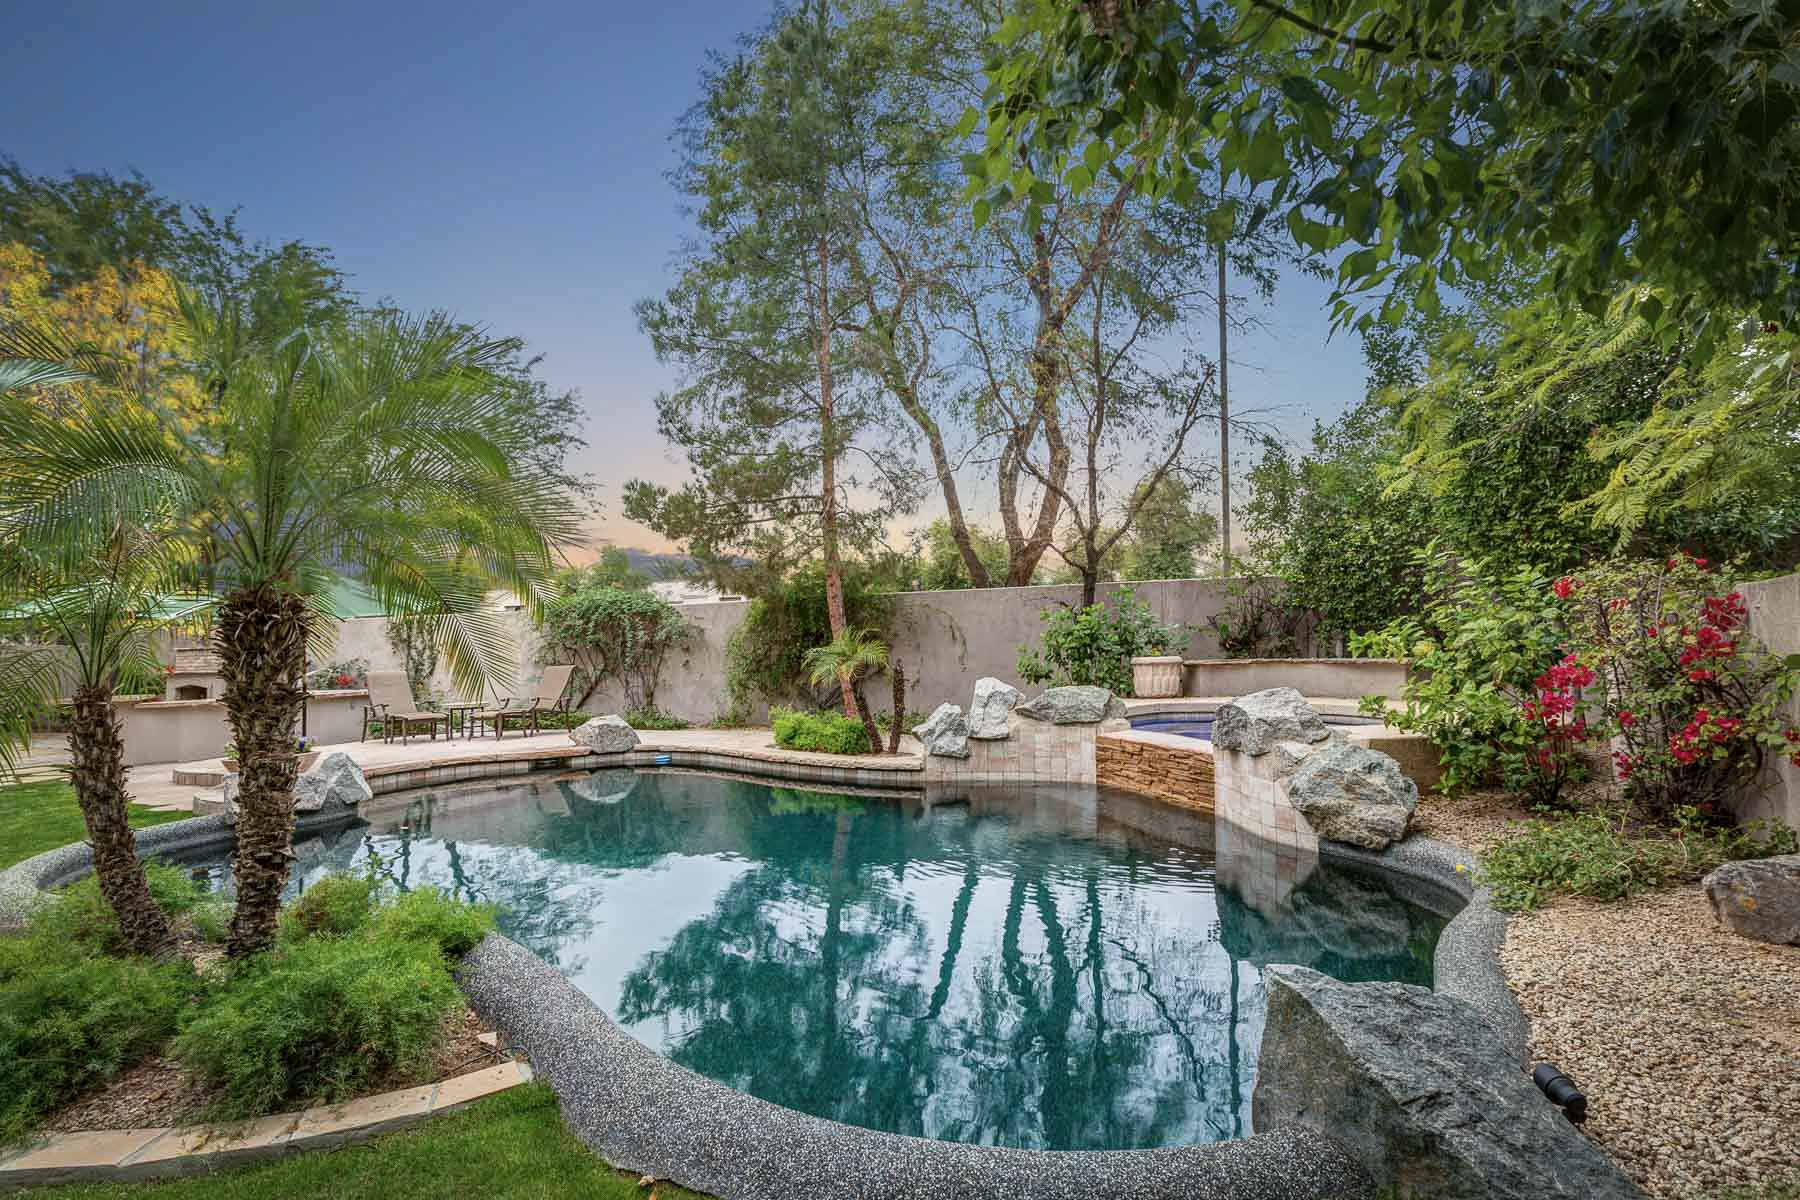 Single Family Home for Sale at Warm and dramatic home in Gainey Village 8808 N 73rd Way Scottsdale, Arizona, 85258 United States